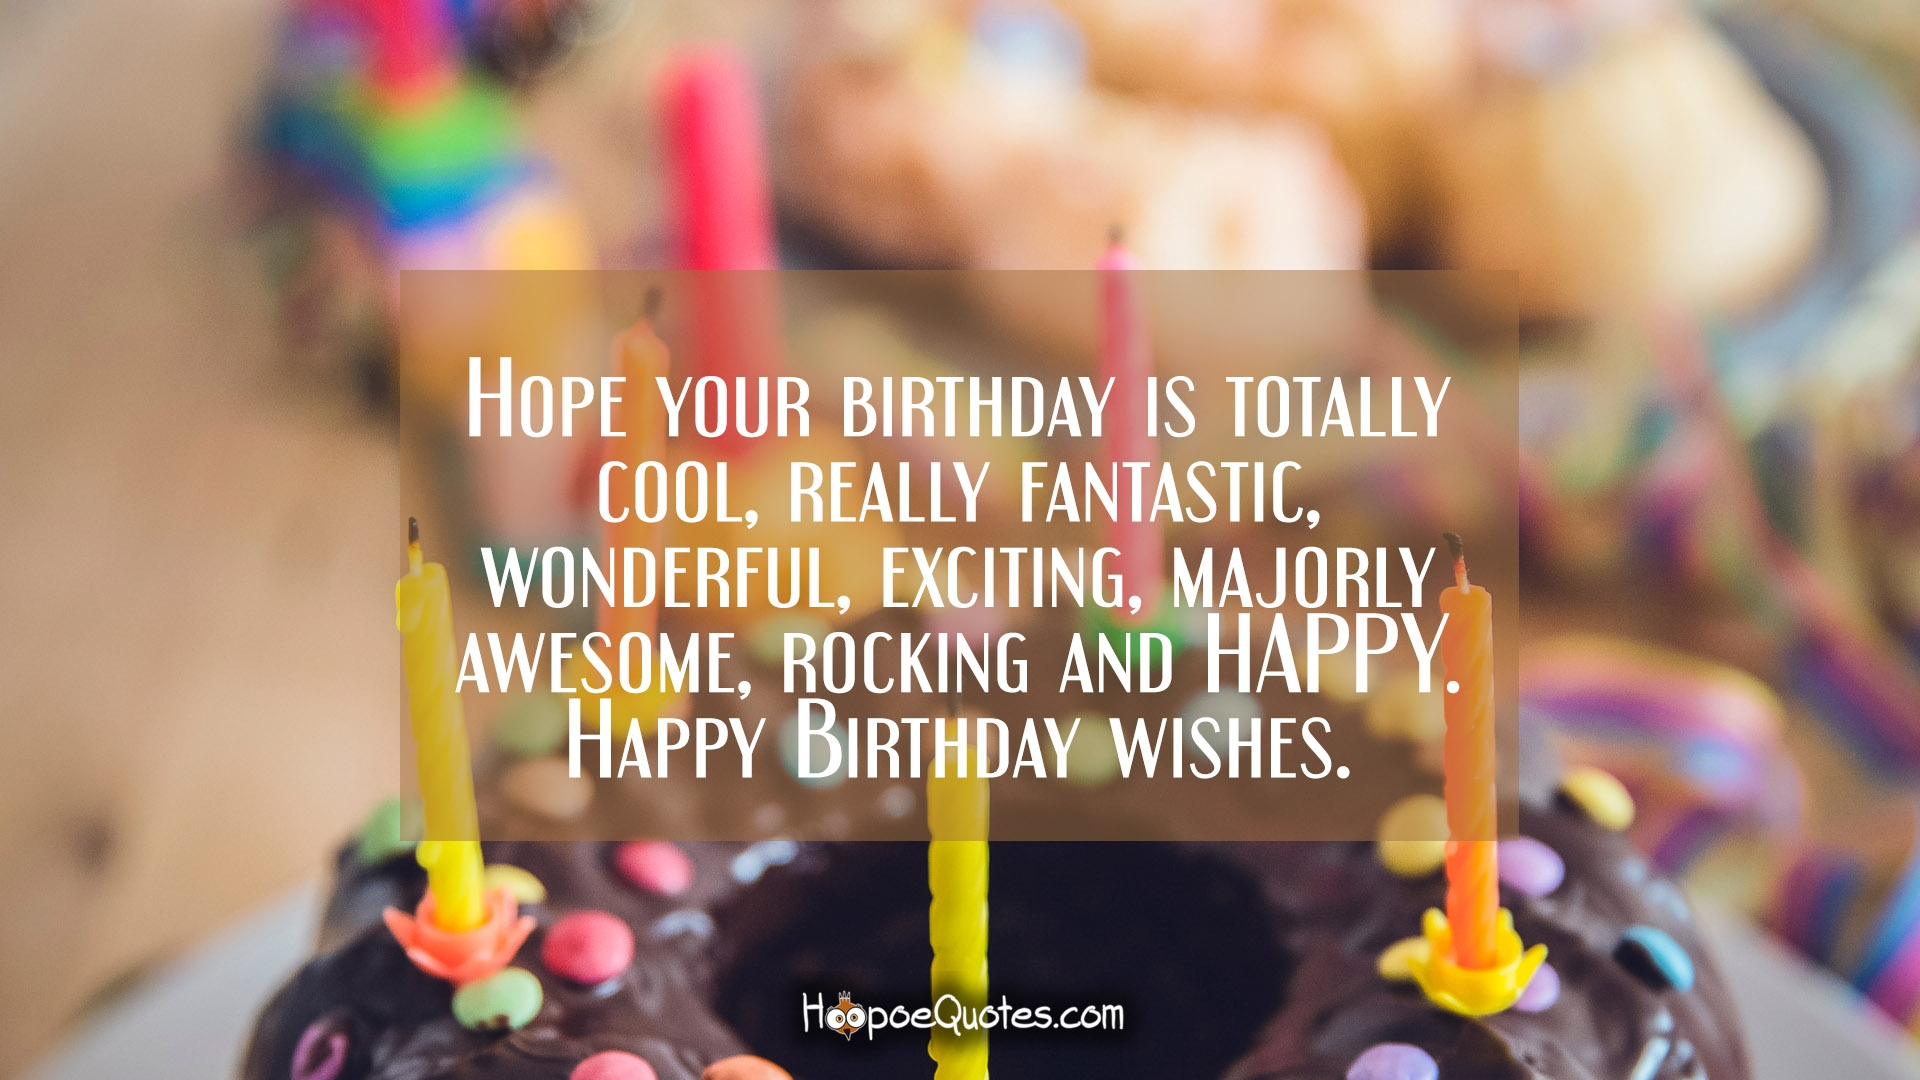 Hope Your Birthday Is Totally Cool Really Fantastic Wonderful Exciting Majorly Awesome